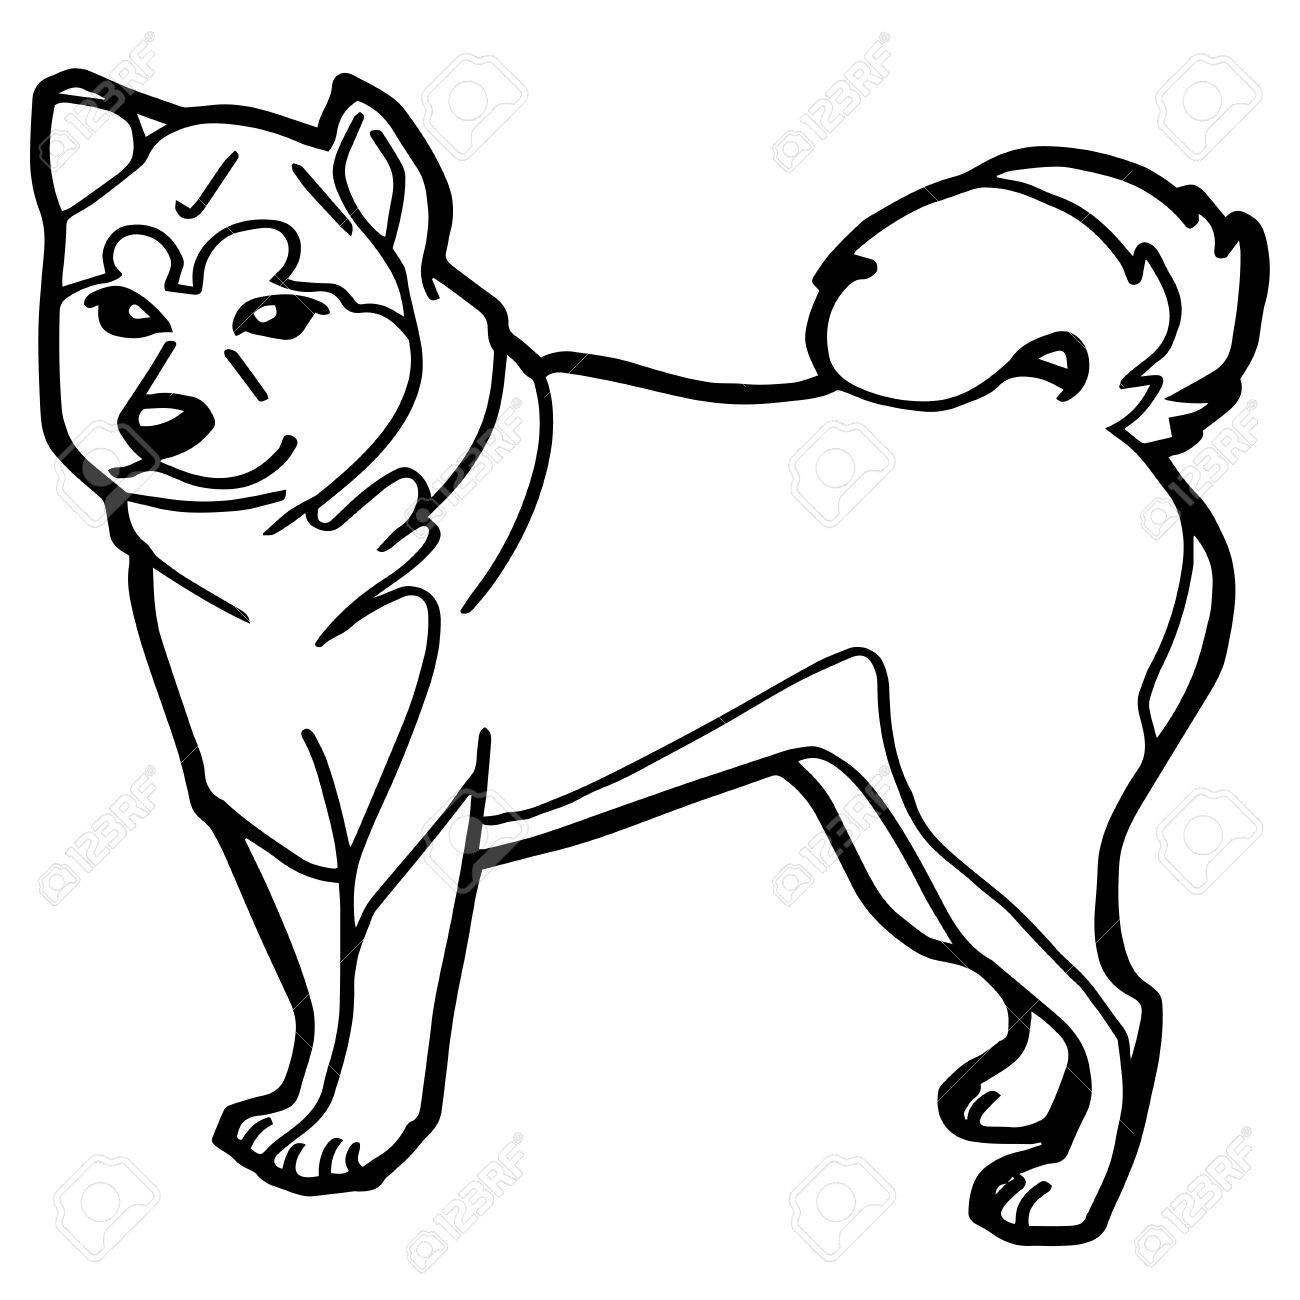 Cartoon Illustration Of Funny Dog For Coloring Book Royalty Free ...